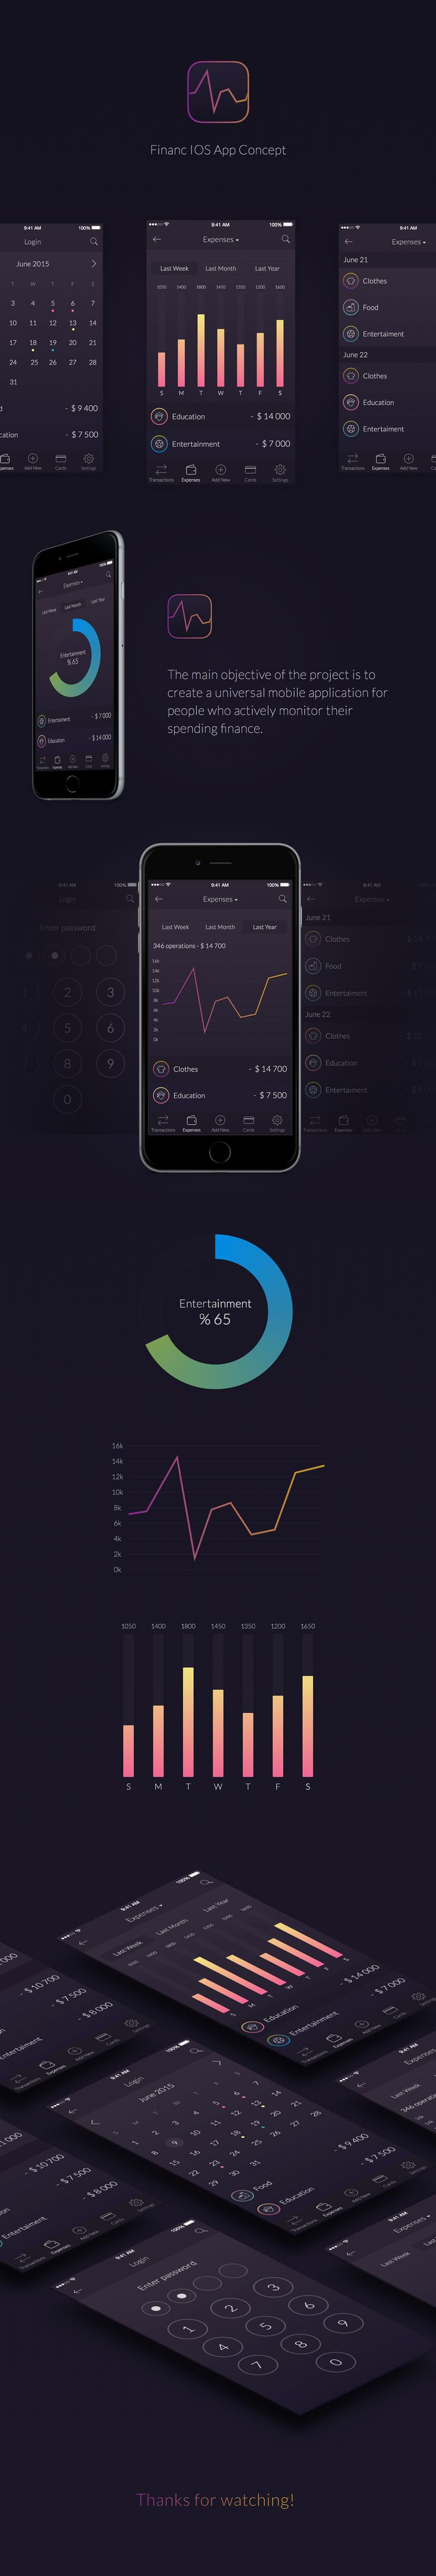 Finance IOS App on Behance